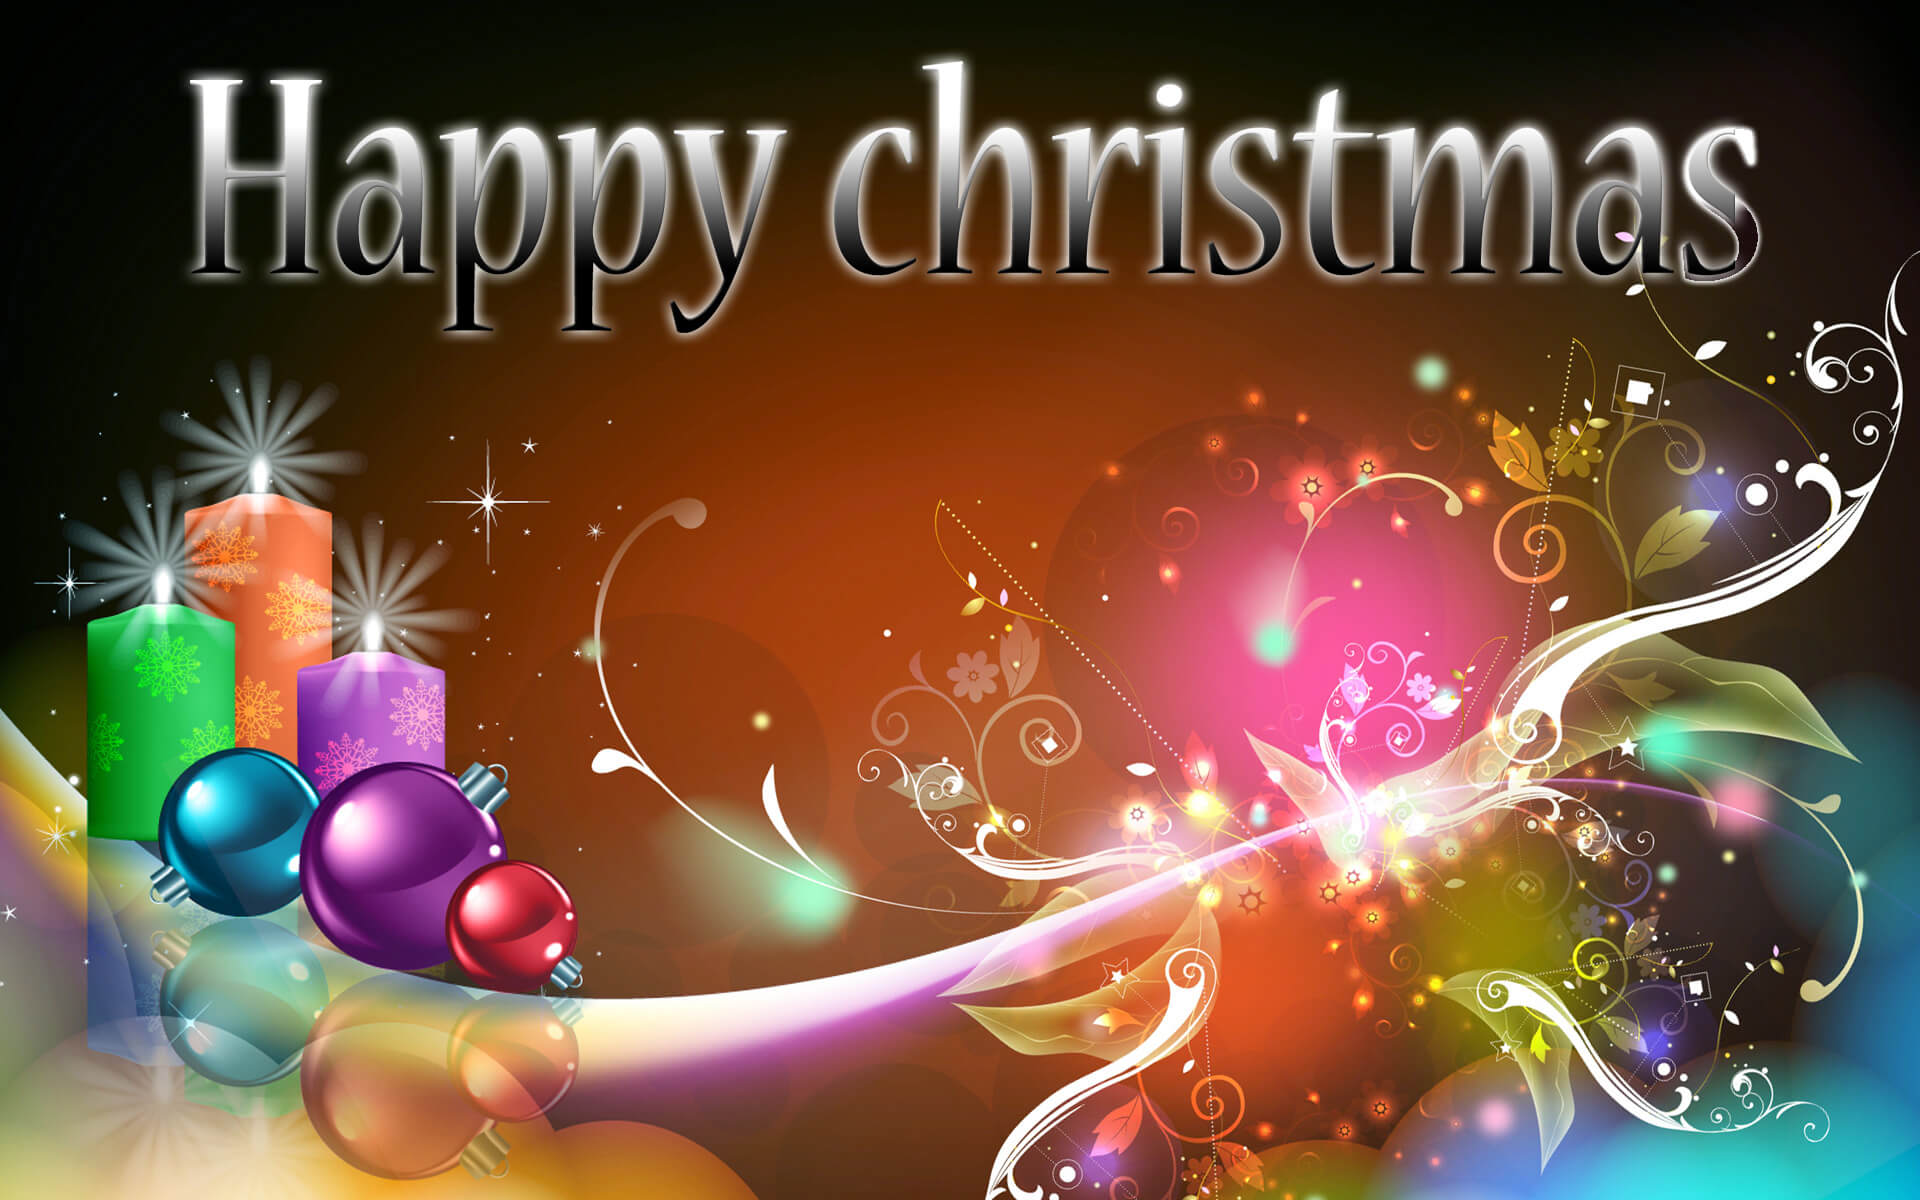 Happy Christmas - News & Photos | WVPhotos